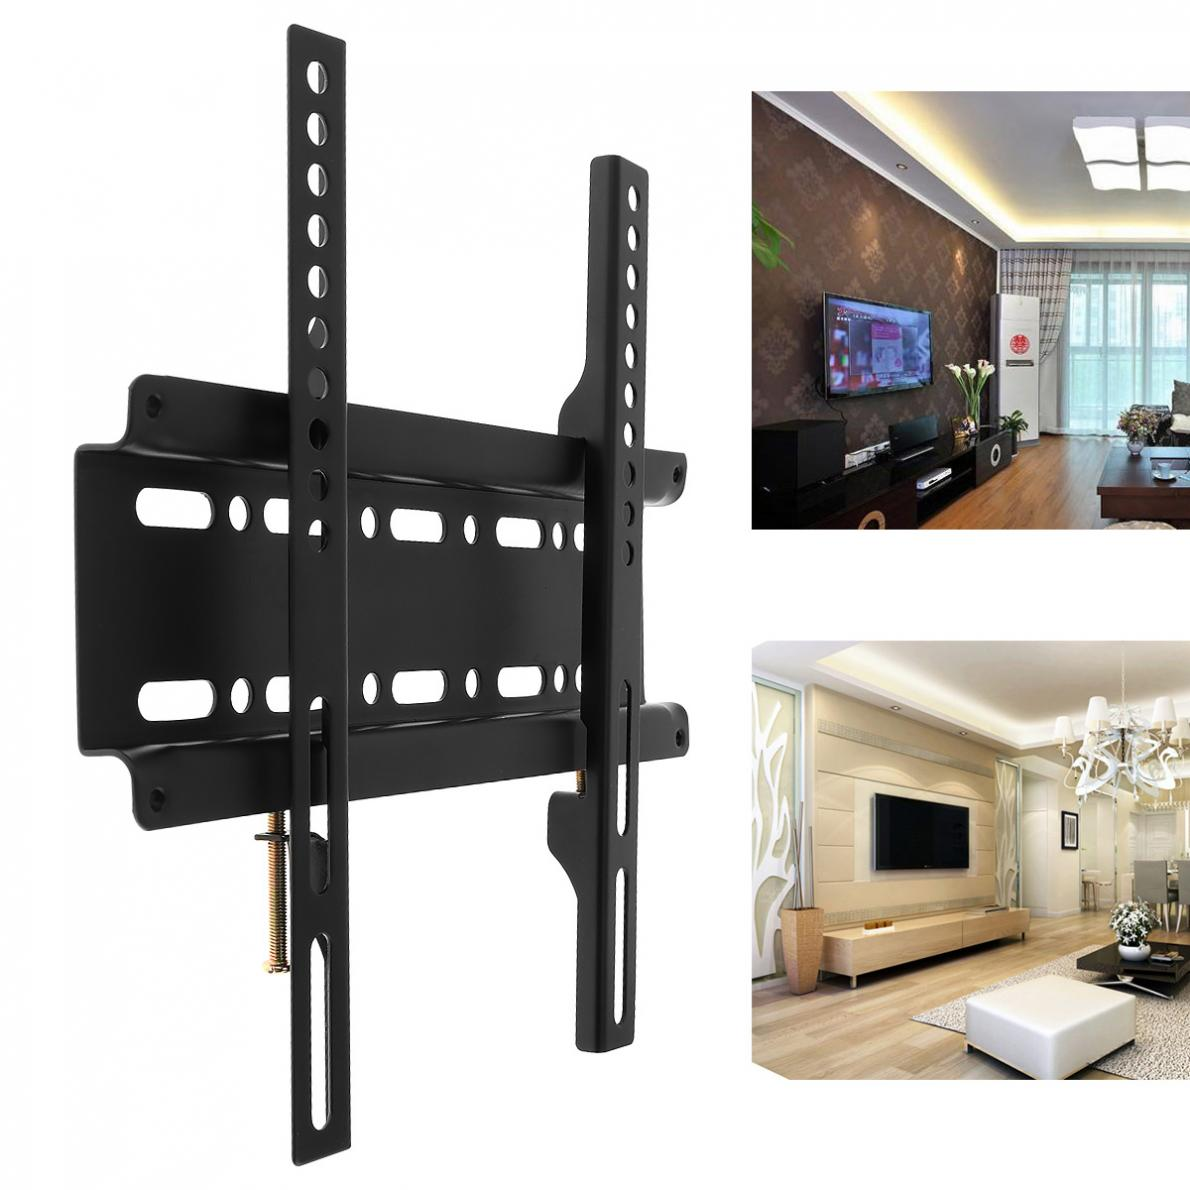 TV Wall Mount Mounts Bracket Fixed Flat Panel TV Television Frame for 12-37 Inch LCD LED Monitor Flat Panel High Quality